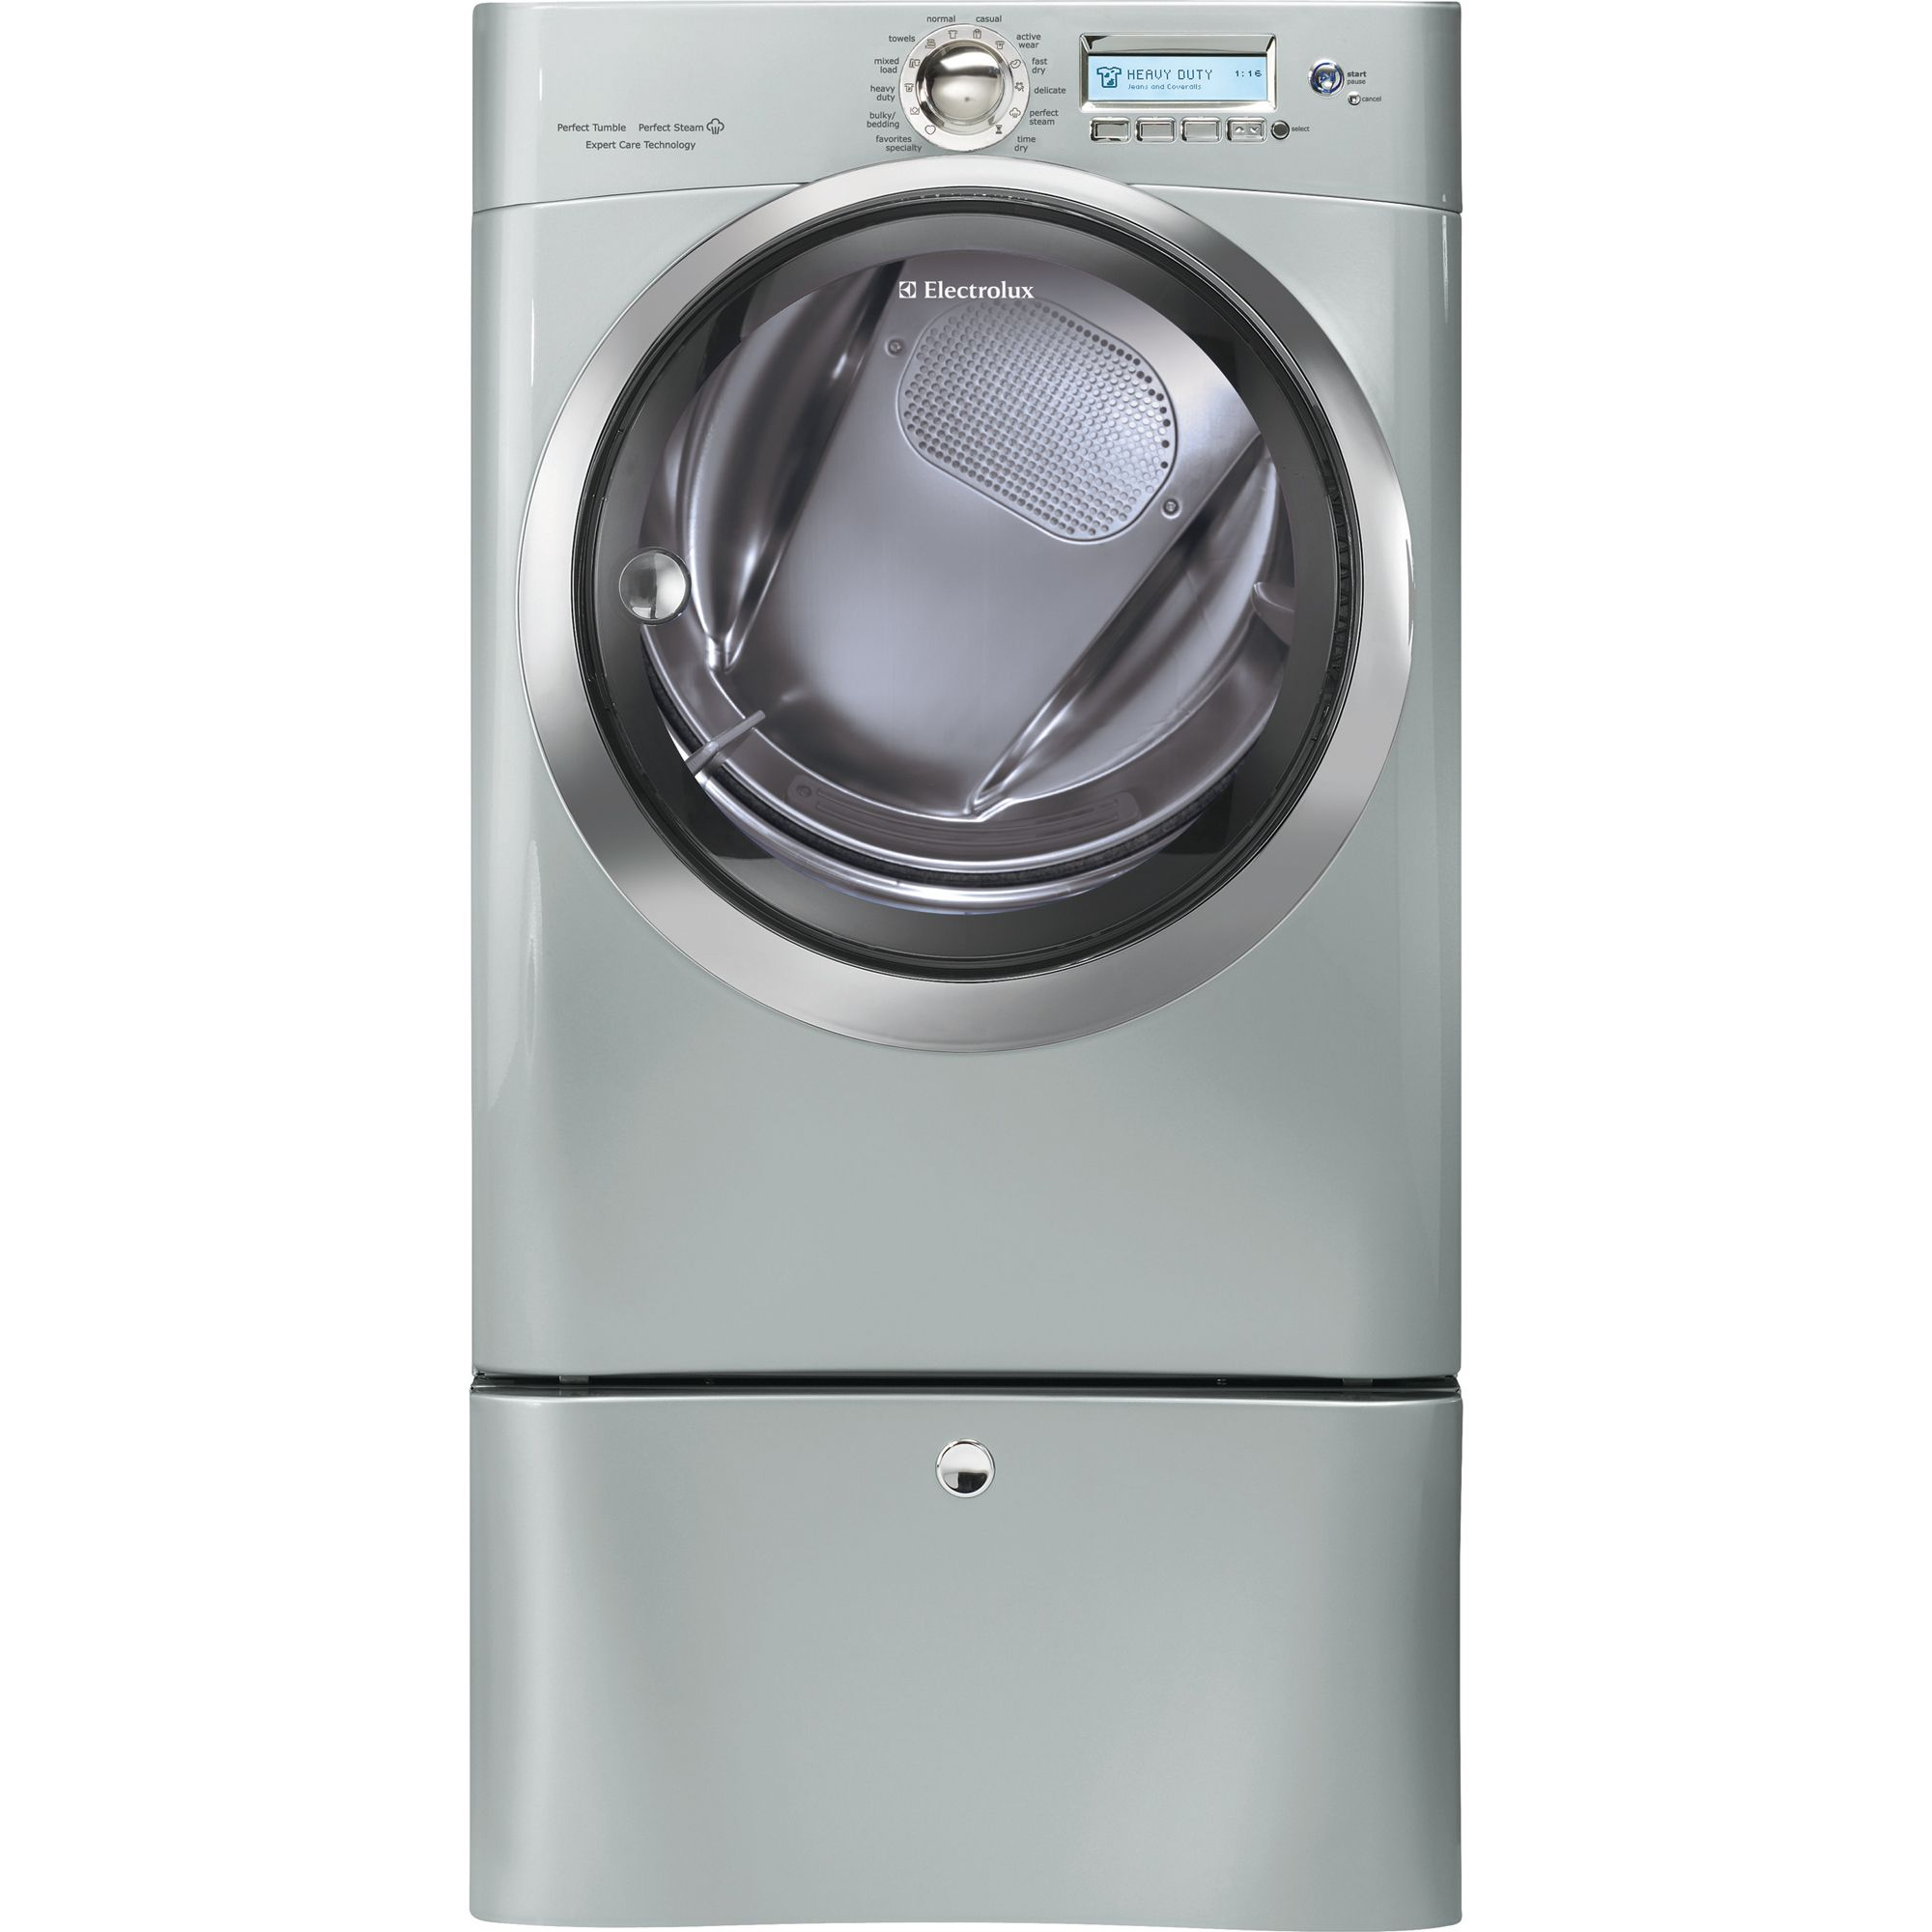 Electrolux EWMGD70JSS 8.0 cu. ft. Steam Gas Dryer - Silver Sands